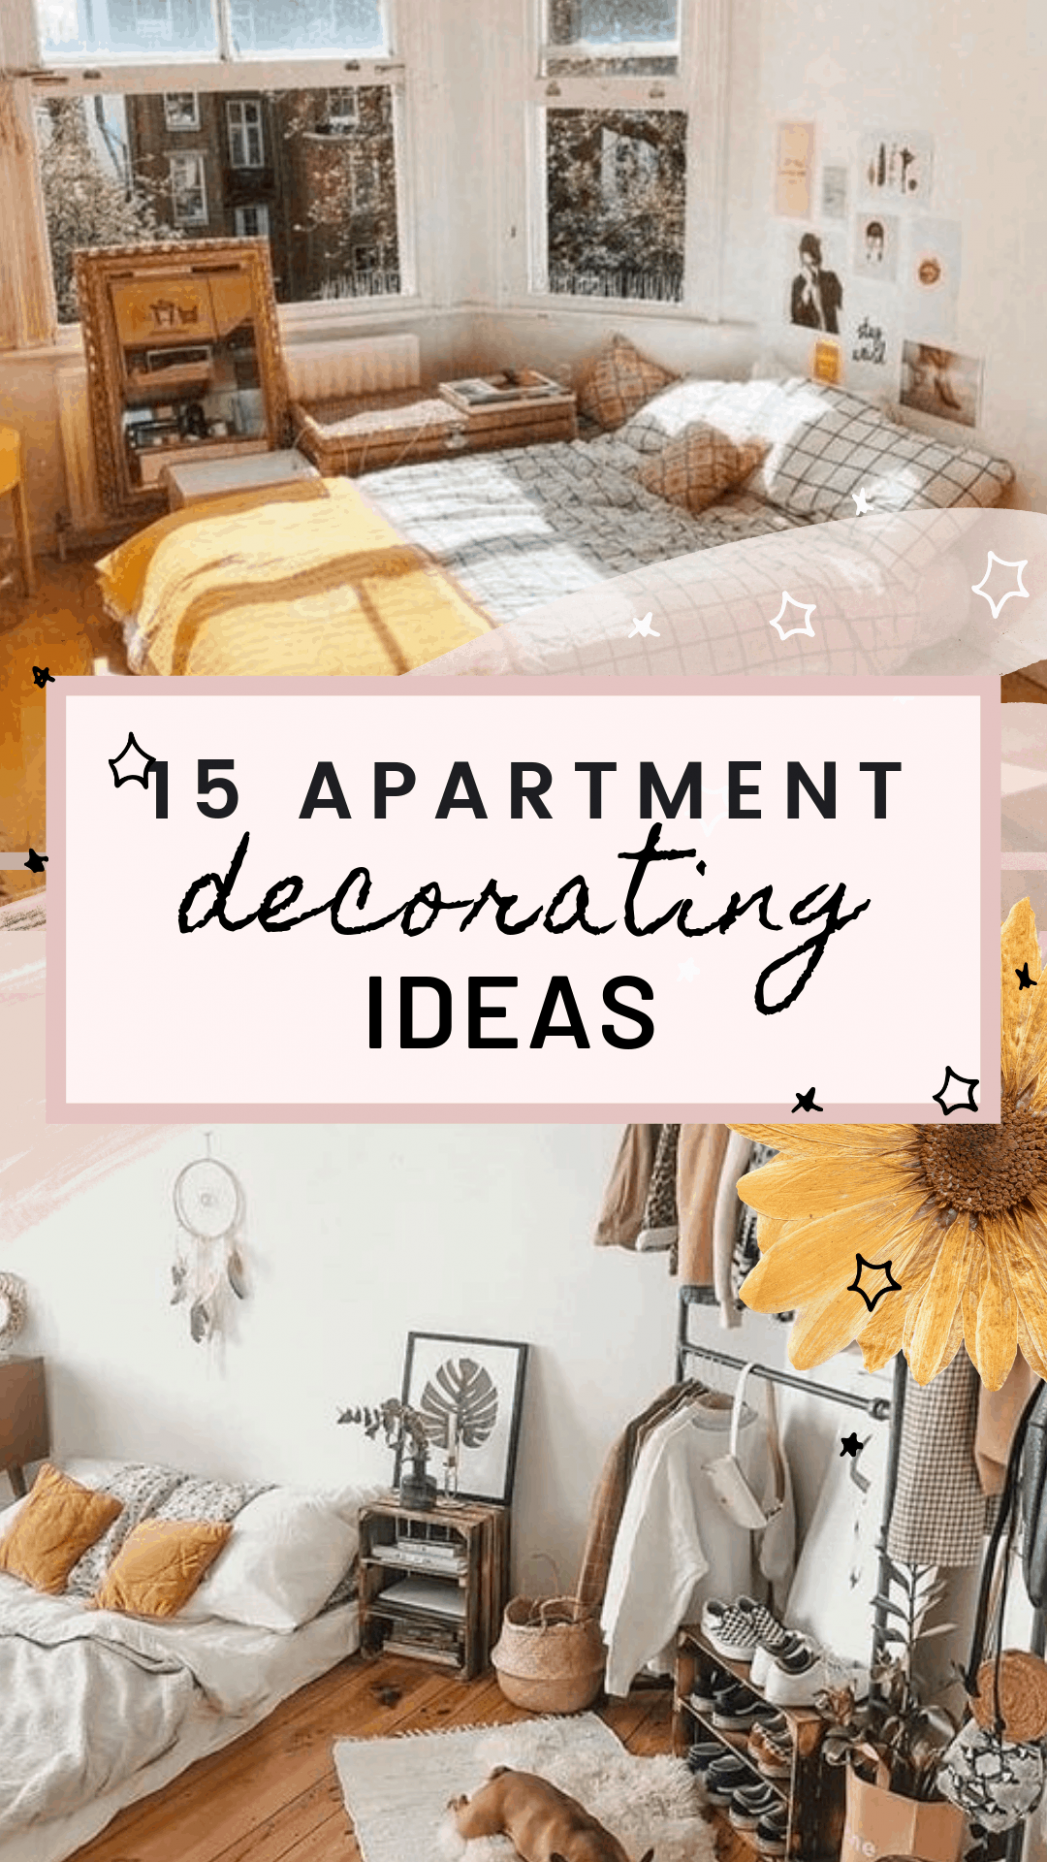 9 Cozy Apartment Decorating Ideas